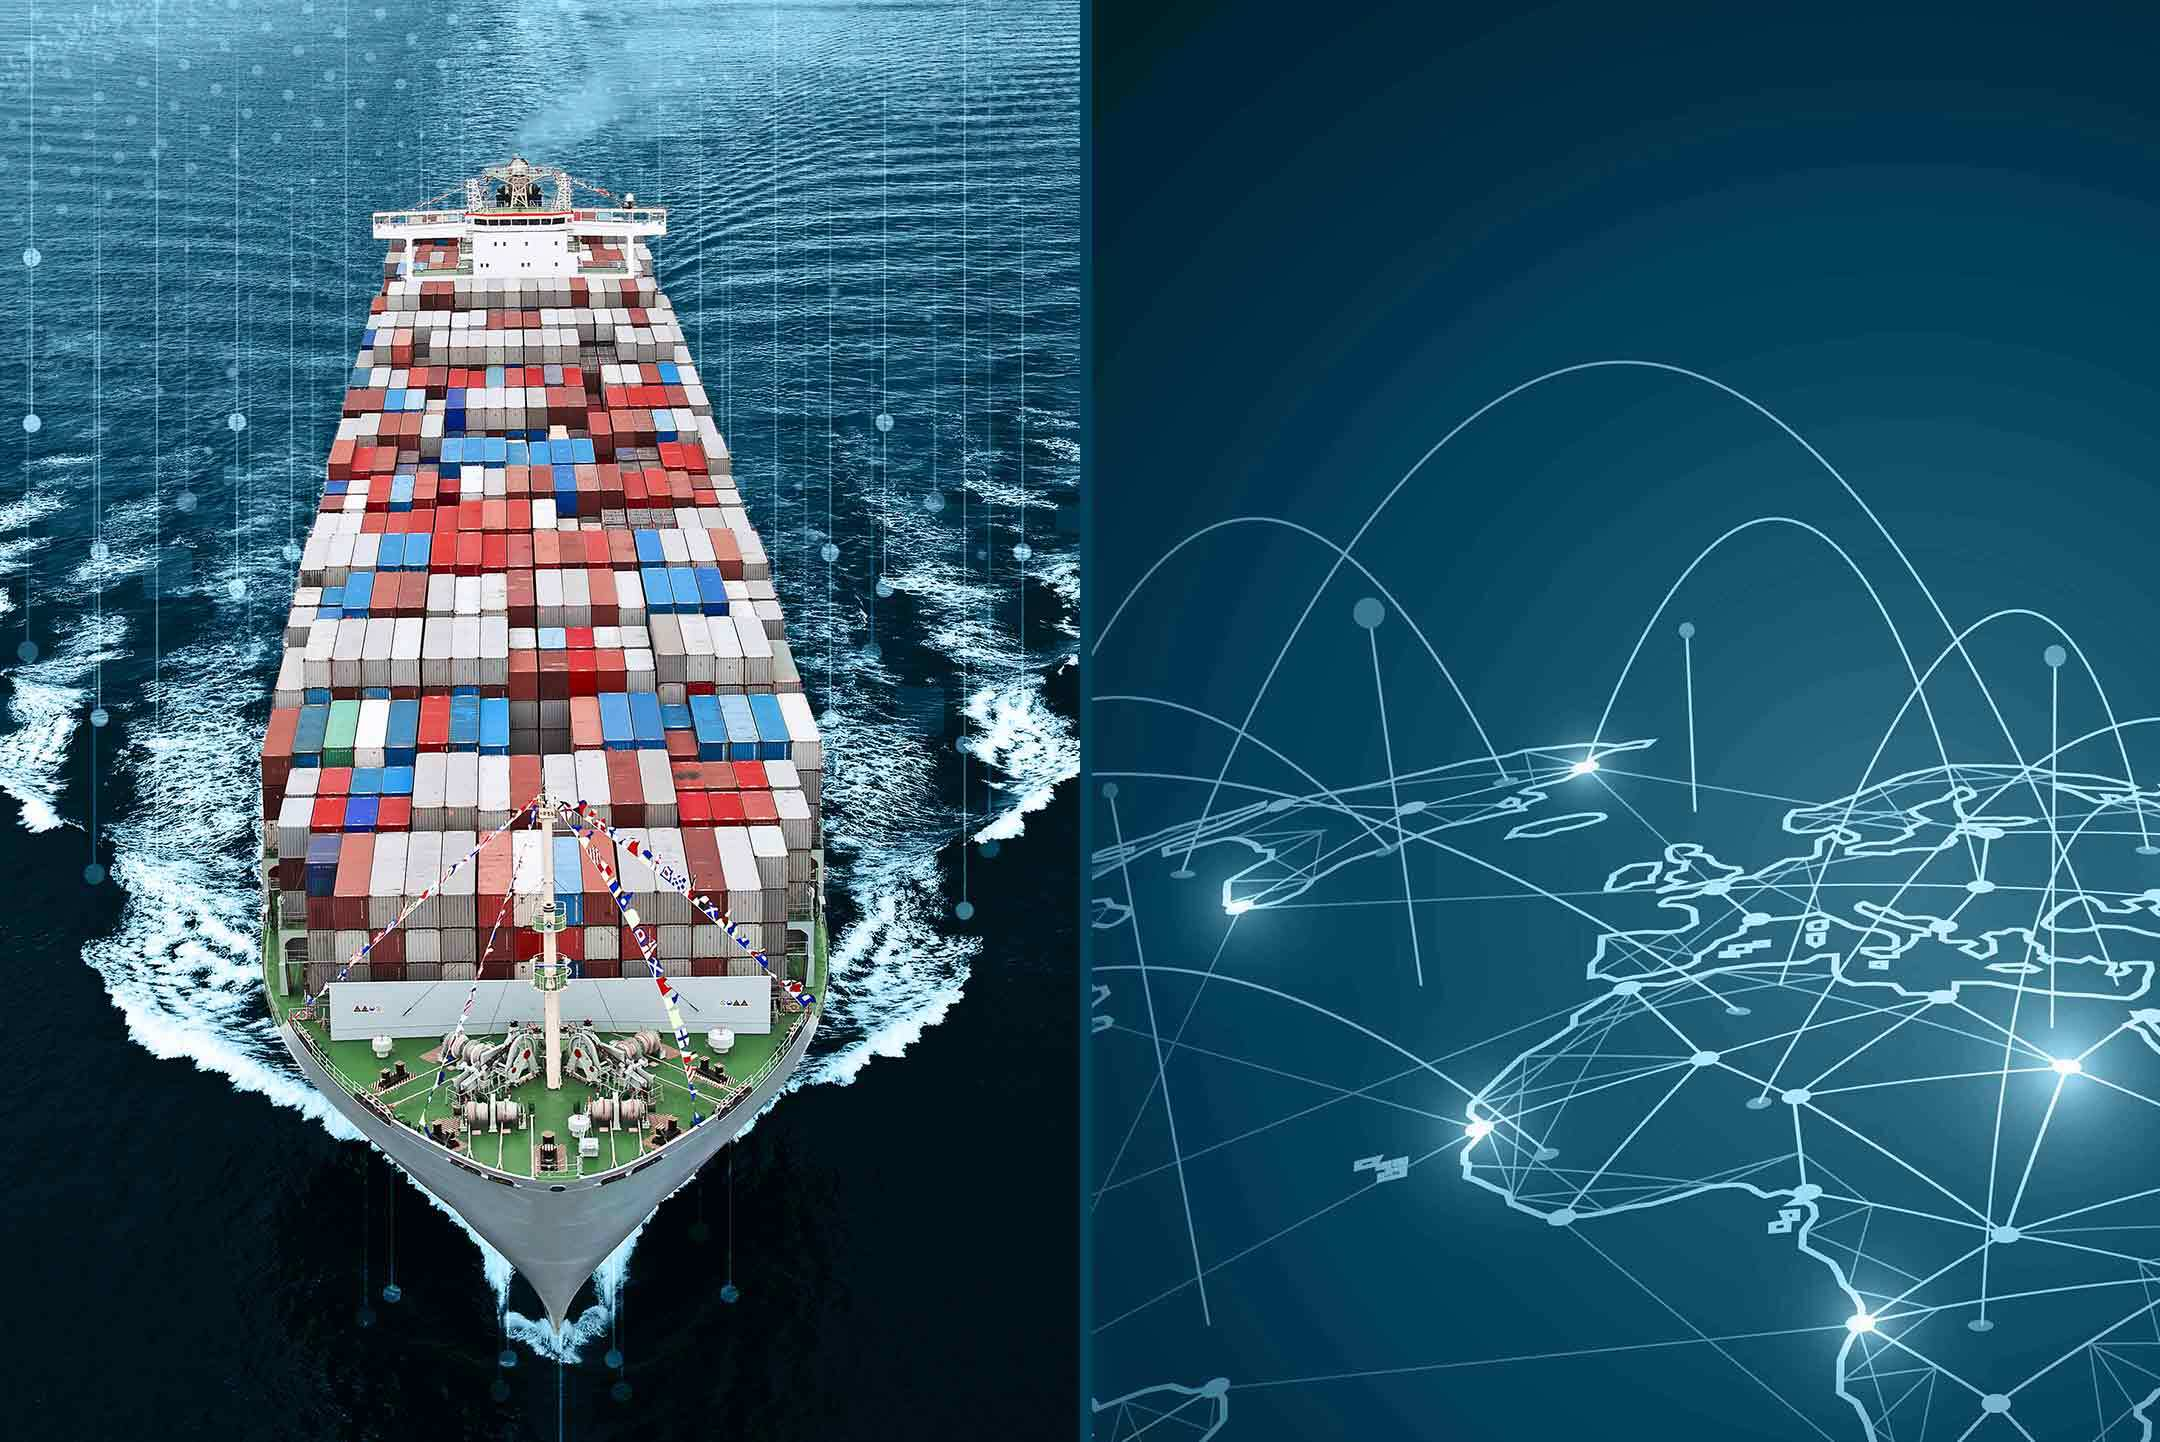 Maritime-specific vs. generic IT systems – pros and cons